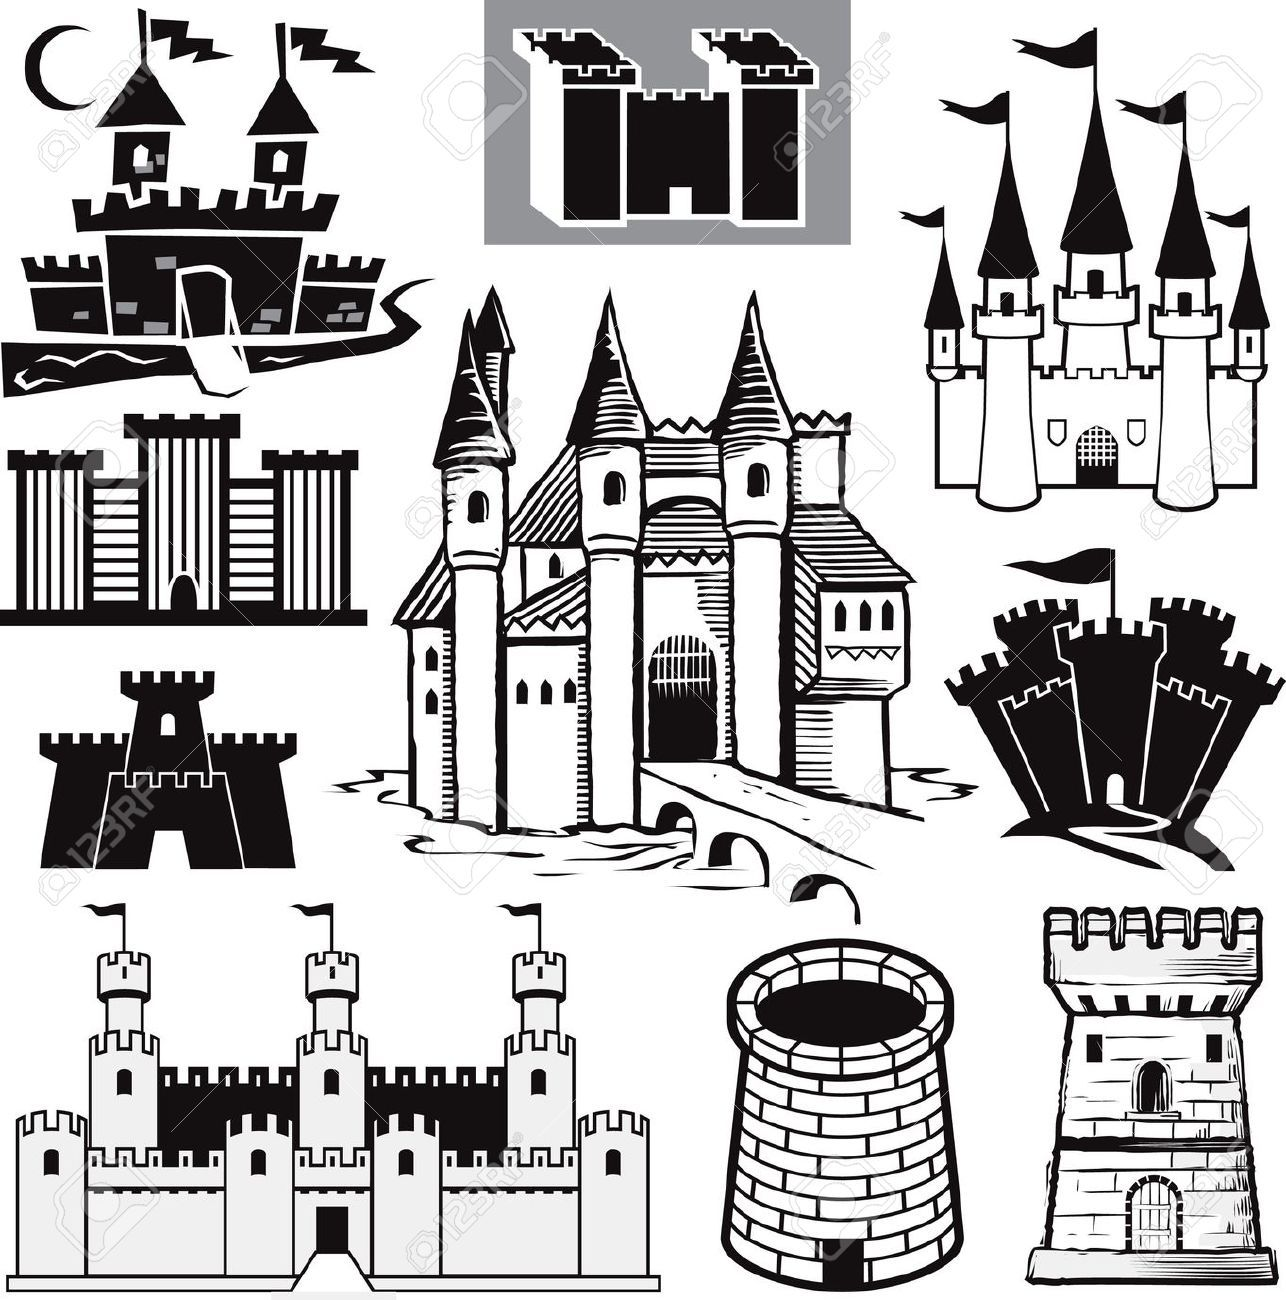 13026608-Castle-Collection-Stock-Vector-castle-medieval-silhouette.jpg (1286×1300)